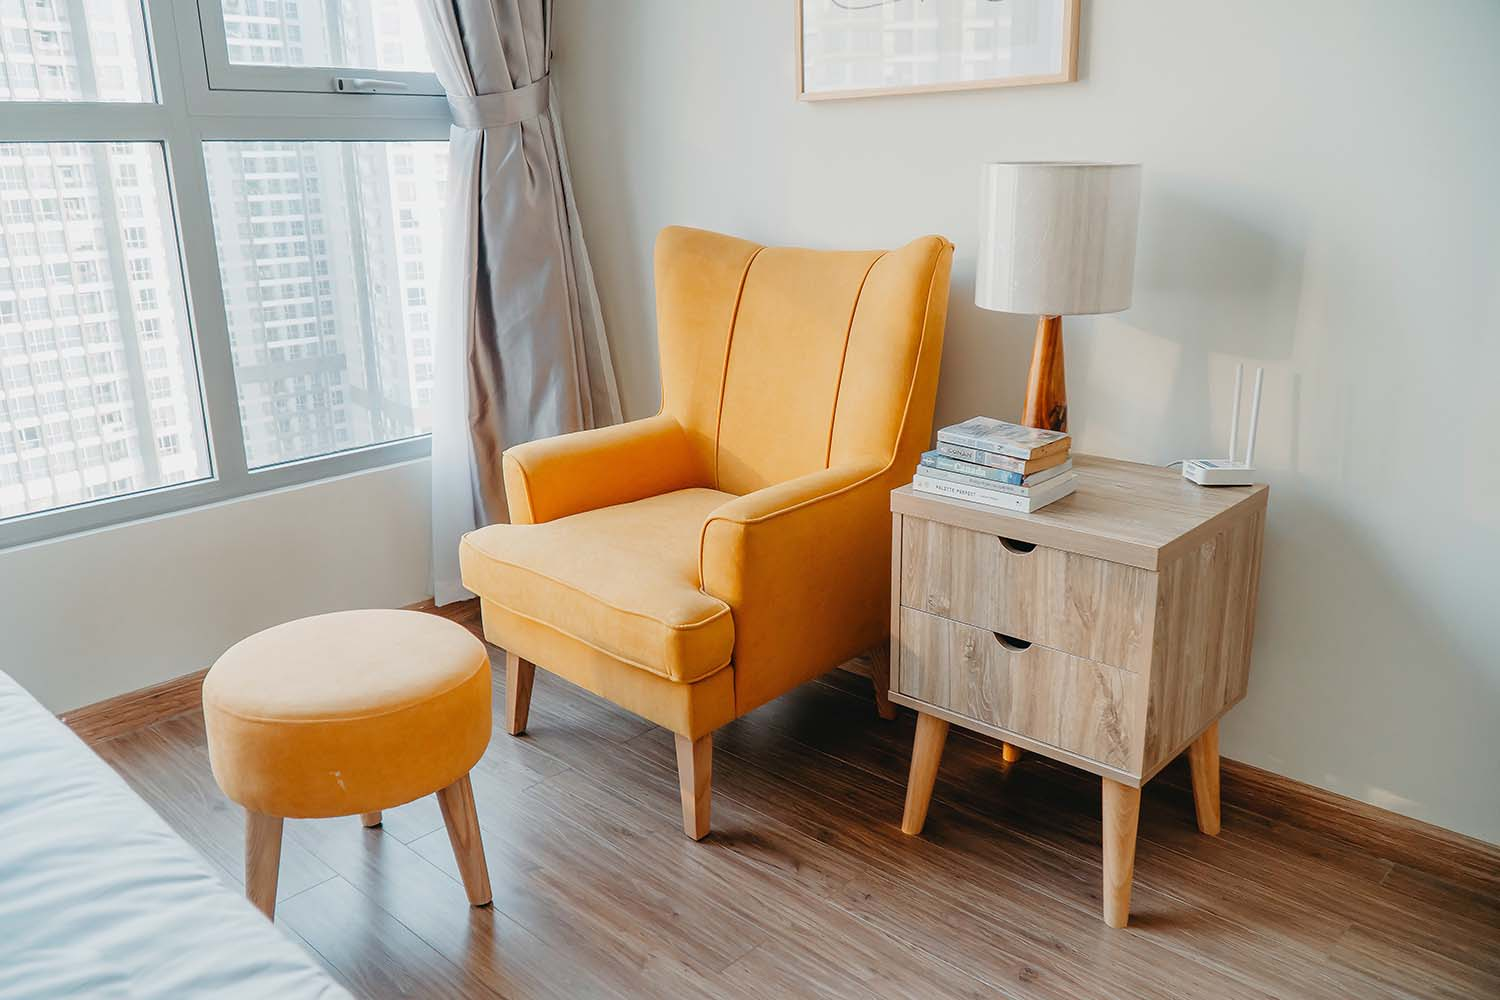 Best Home Decor Ideas When You're On A Budget